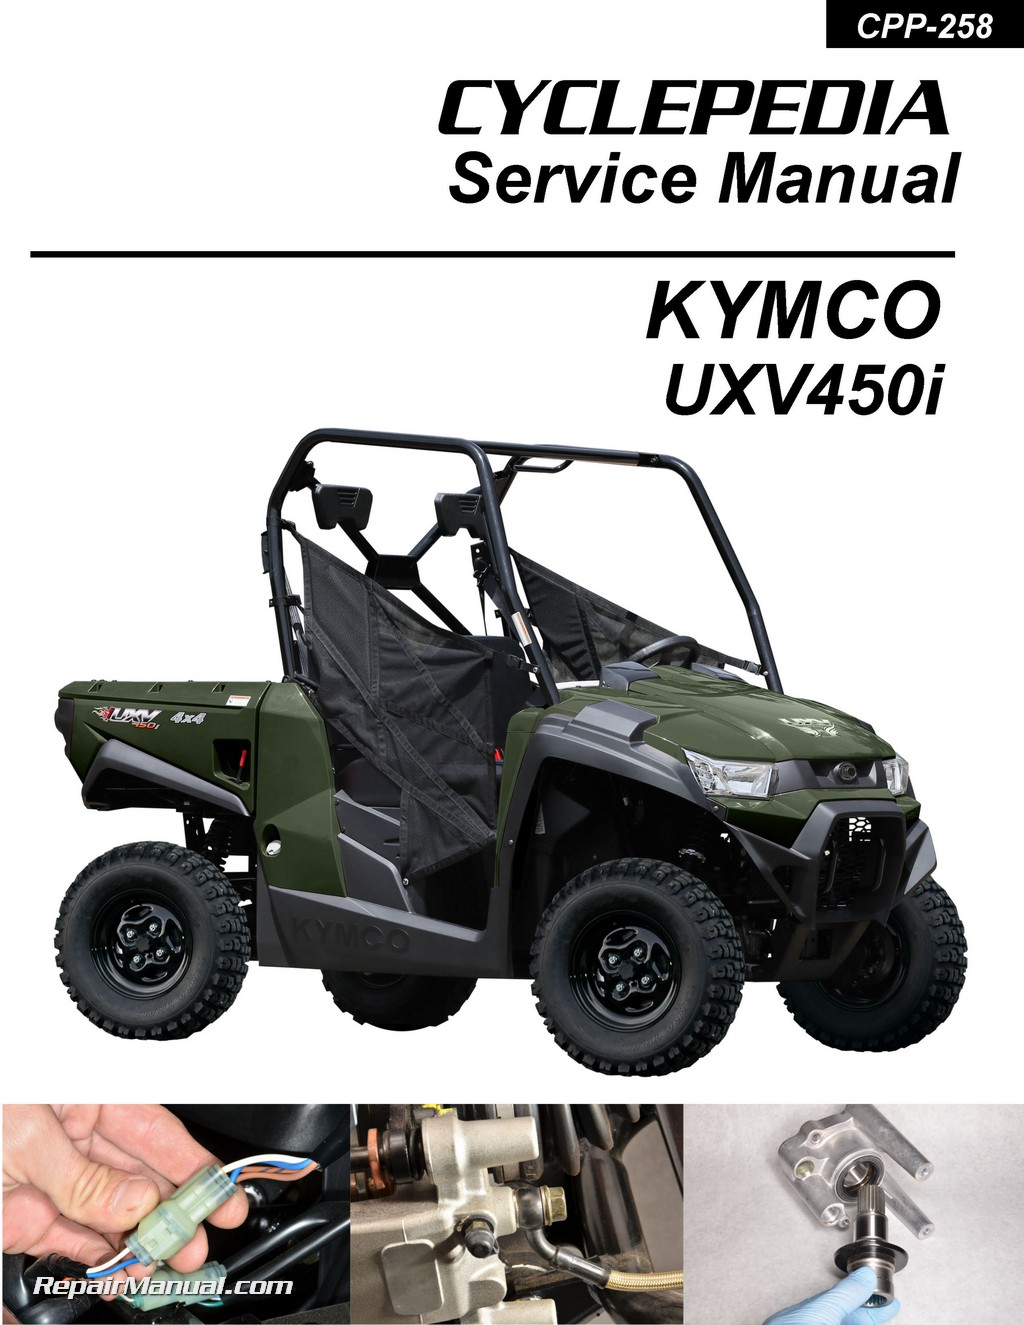 hight resolution of kymco uxv 450i 4x4 side x side printed service manual